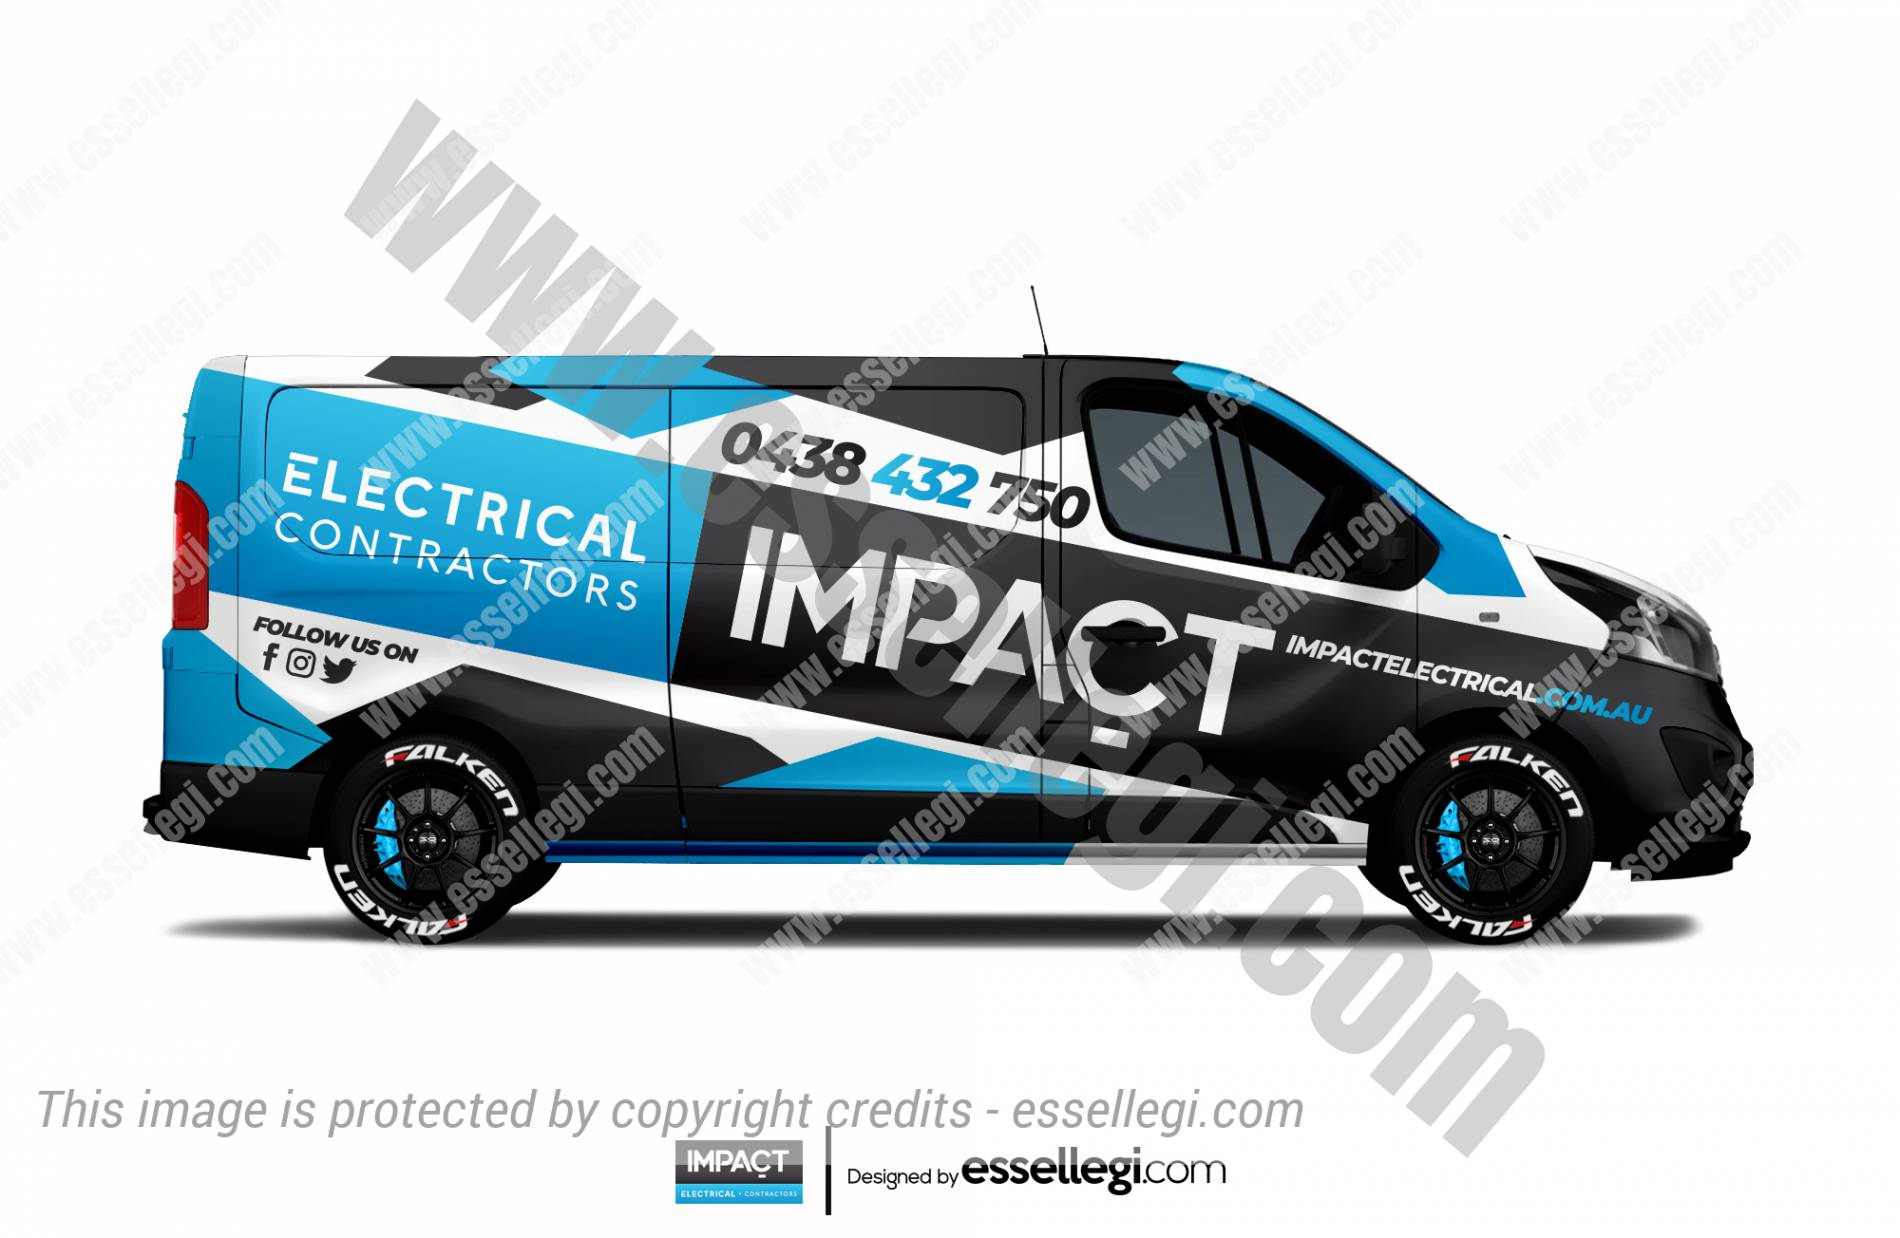 Renault Trafic Wrap Design. Renault Trafic | Van Wrap Design by Essellegi. Van Signs, Van Signage, Van Wrapping, Van Signwriting, Van Wrap Designer, Signs for Van, Van Logo, Van Graphic by Essellegi.